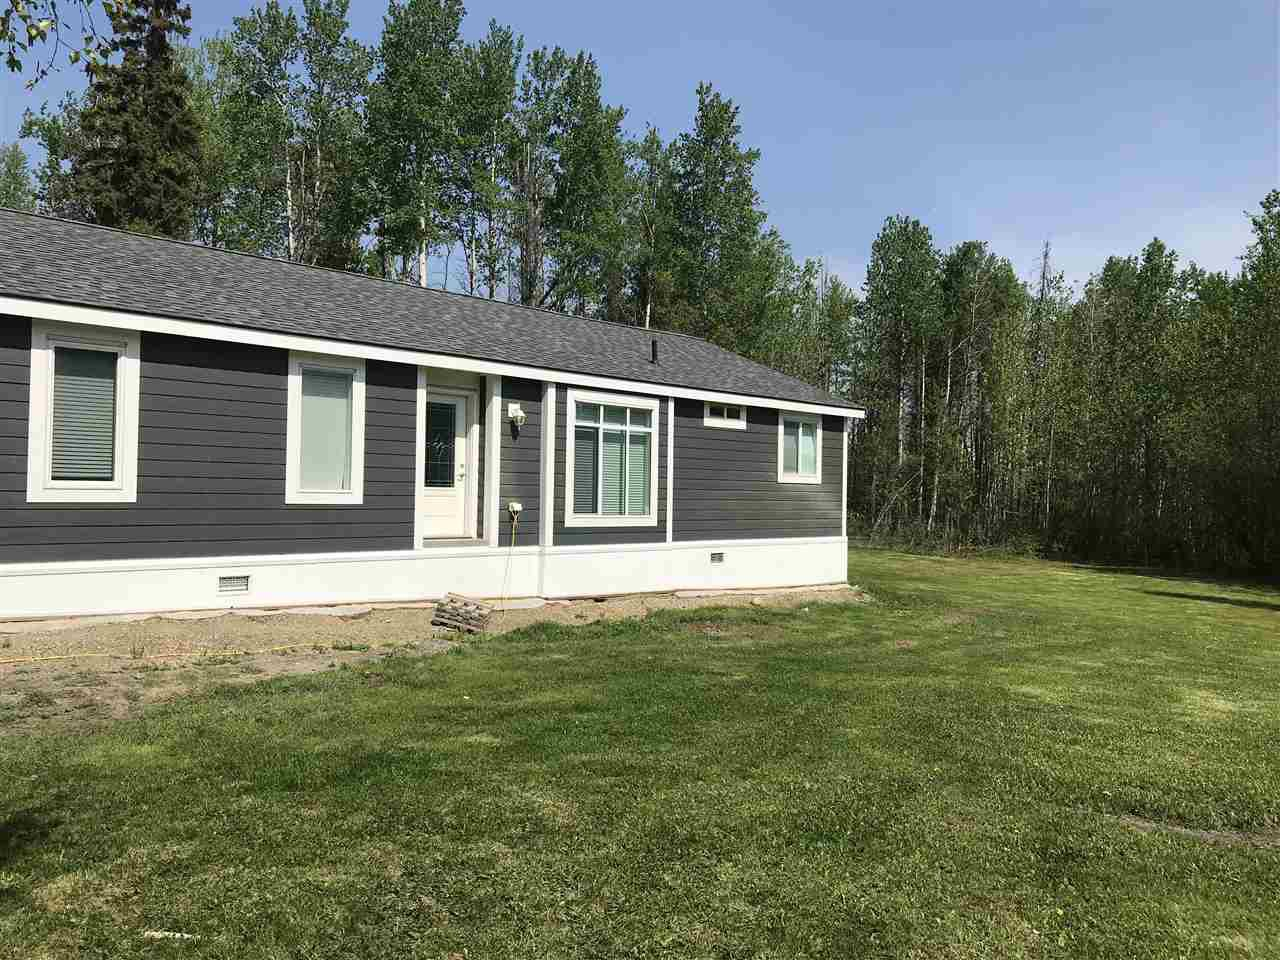 "Main Photo: 14440 256 Road in Fort St. John: Fort St. John - City NW Manufactured Home for sale in ""MONTNEY"" (Fort St. John (Zone 60))  : MLS®# R2374528"